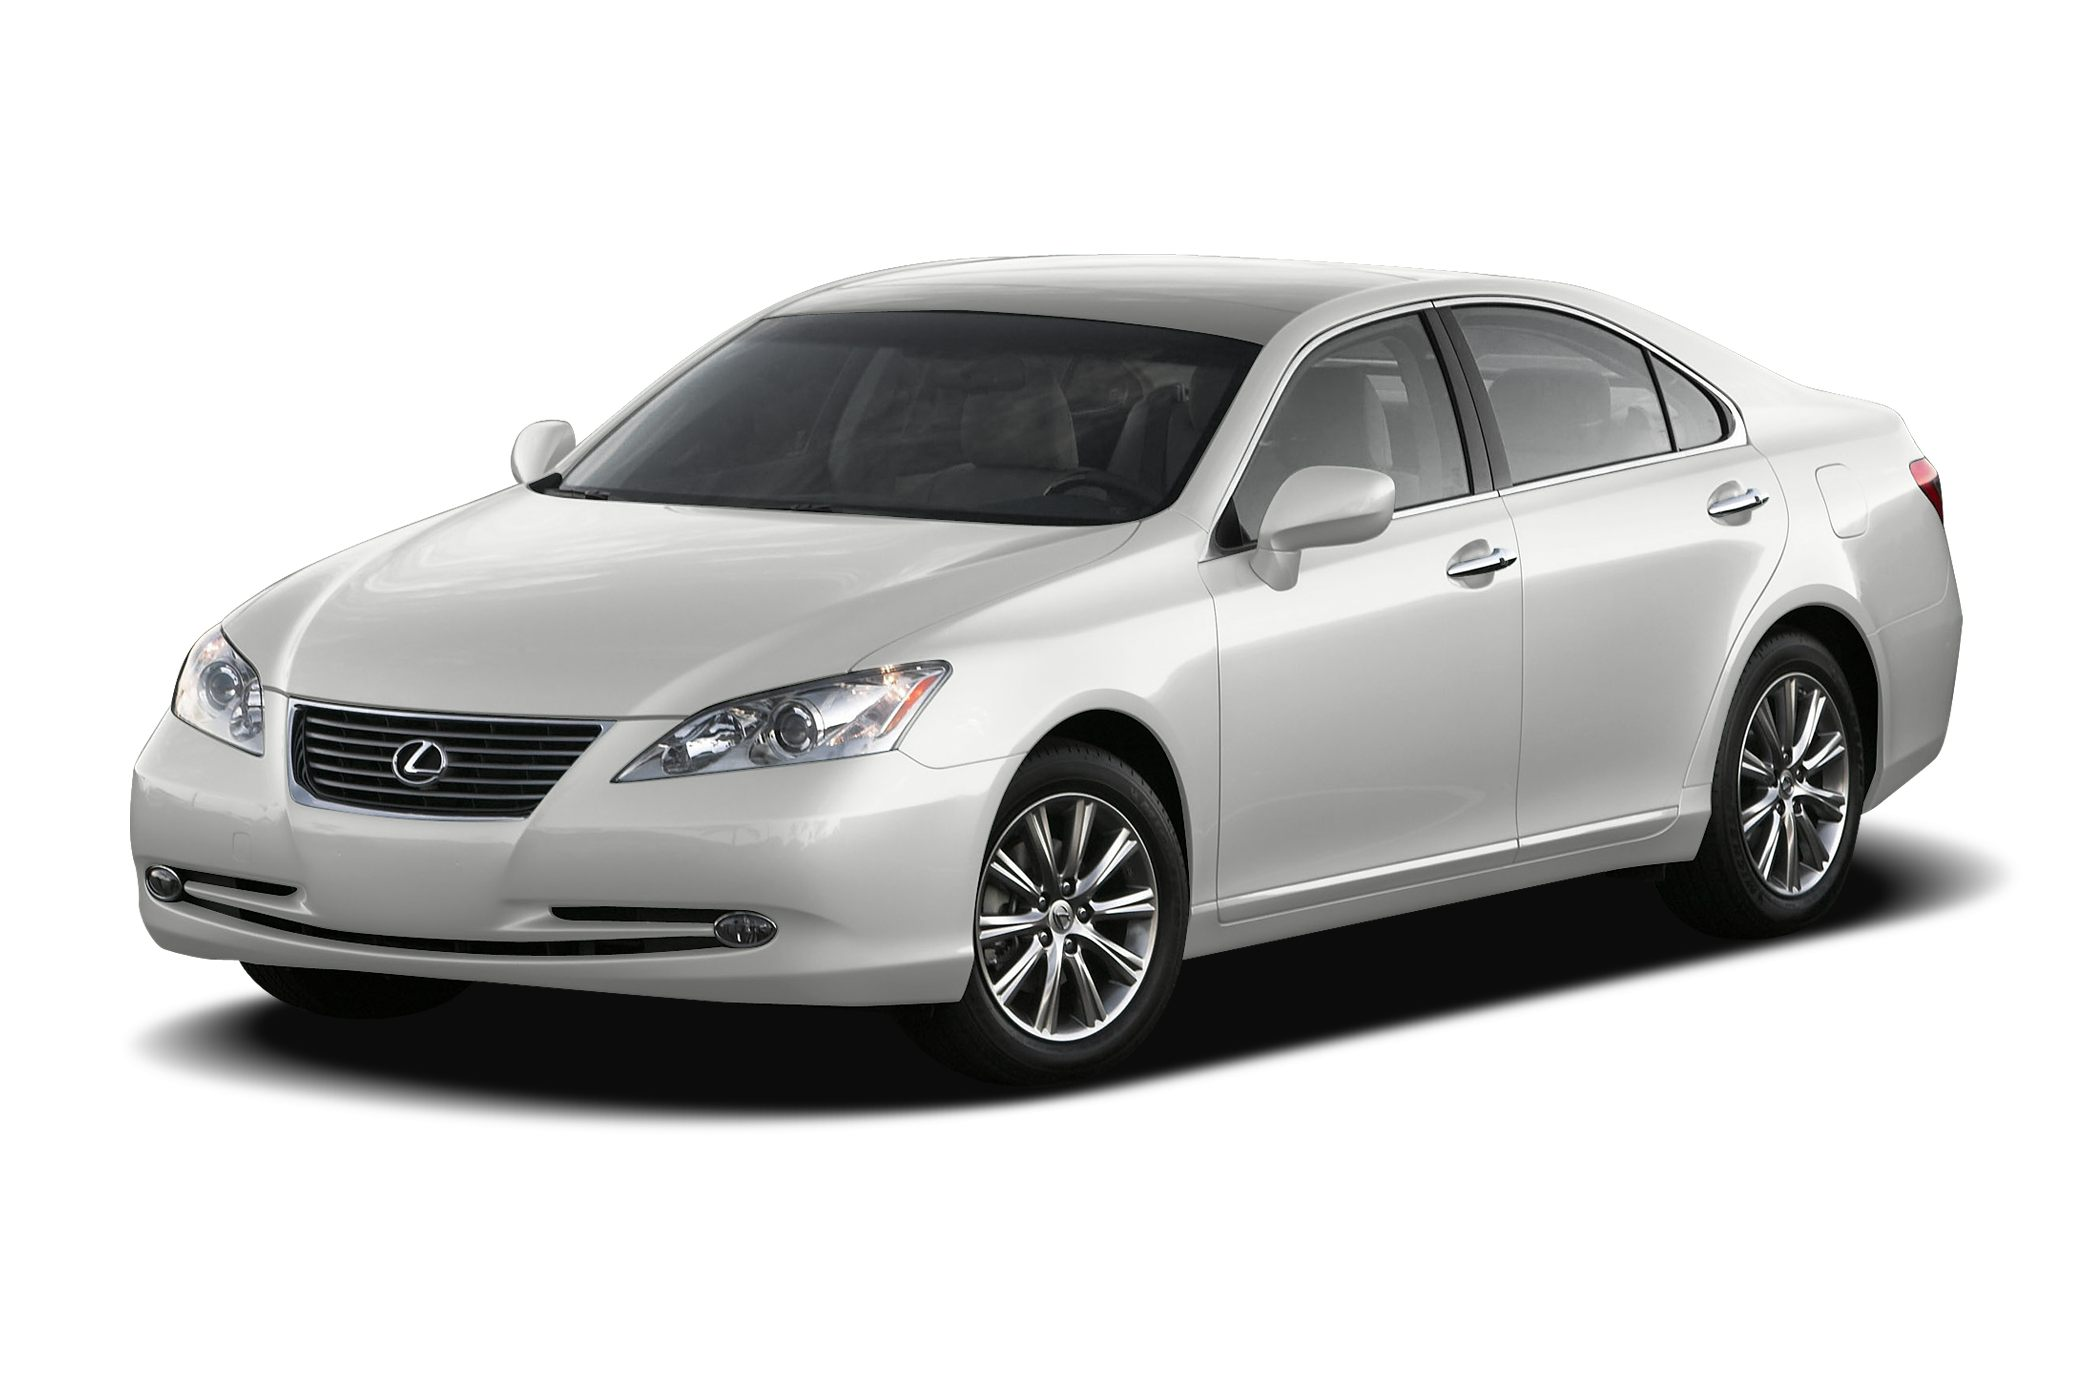 2007 Lexus ES 350 Sedan for sale in Dillsburg for $14,954 with 98,688 miles.